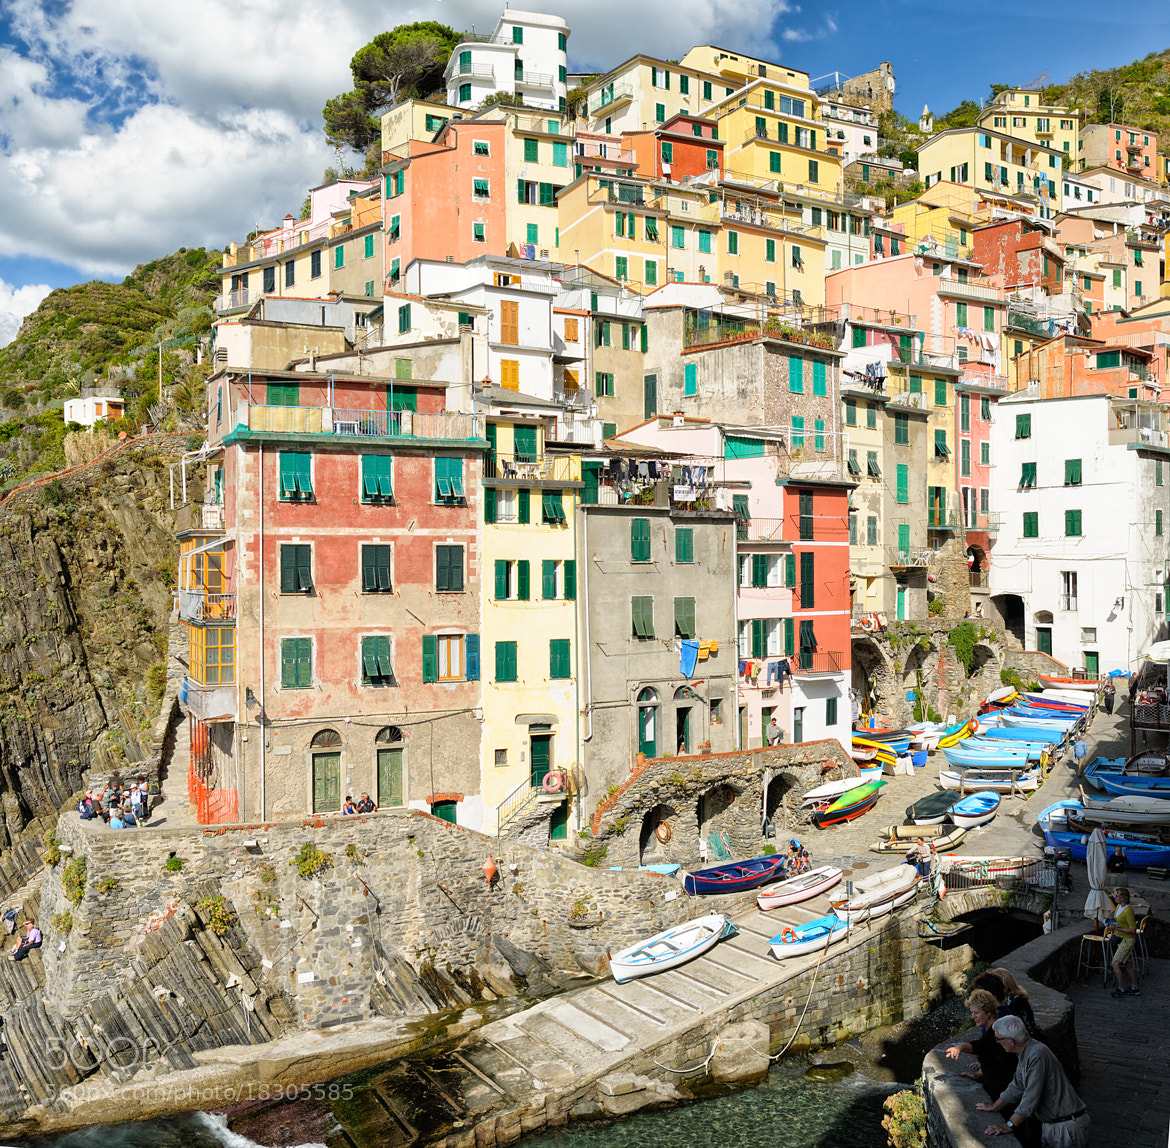 Photograph riomaggiore italy by  Kilinson on 500px